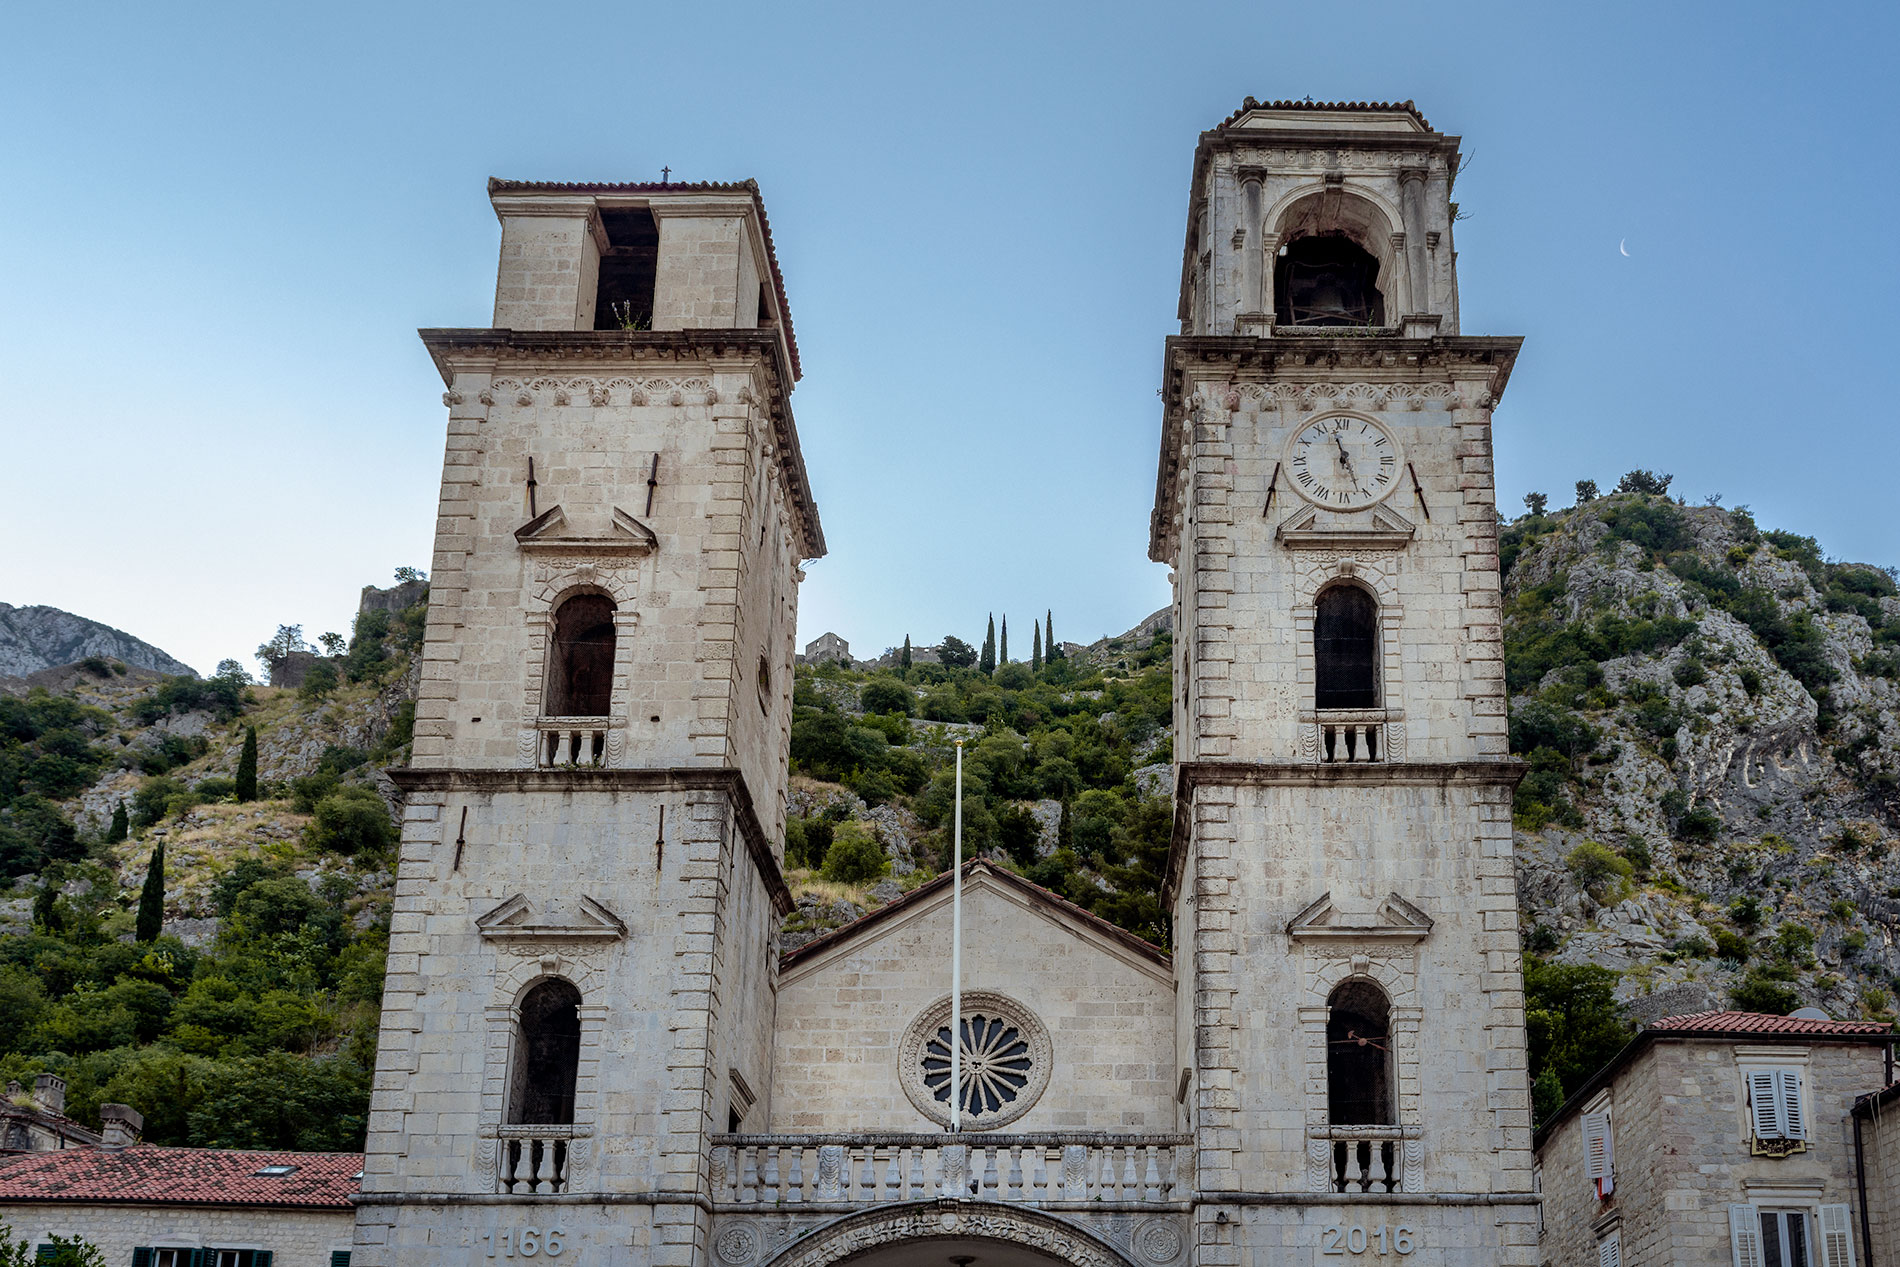 The St Tryphon Cathedral, located in the center of Kotor's Old Town